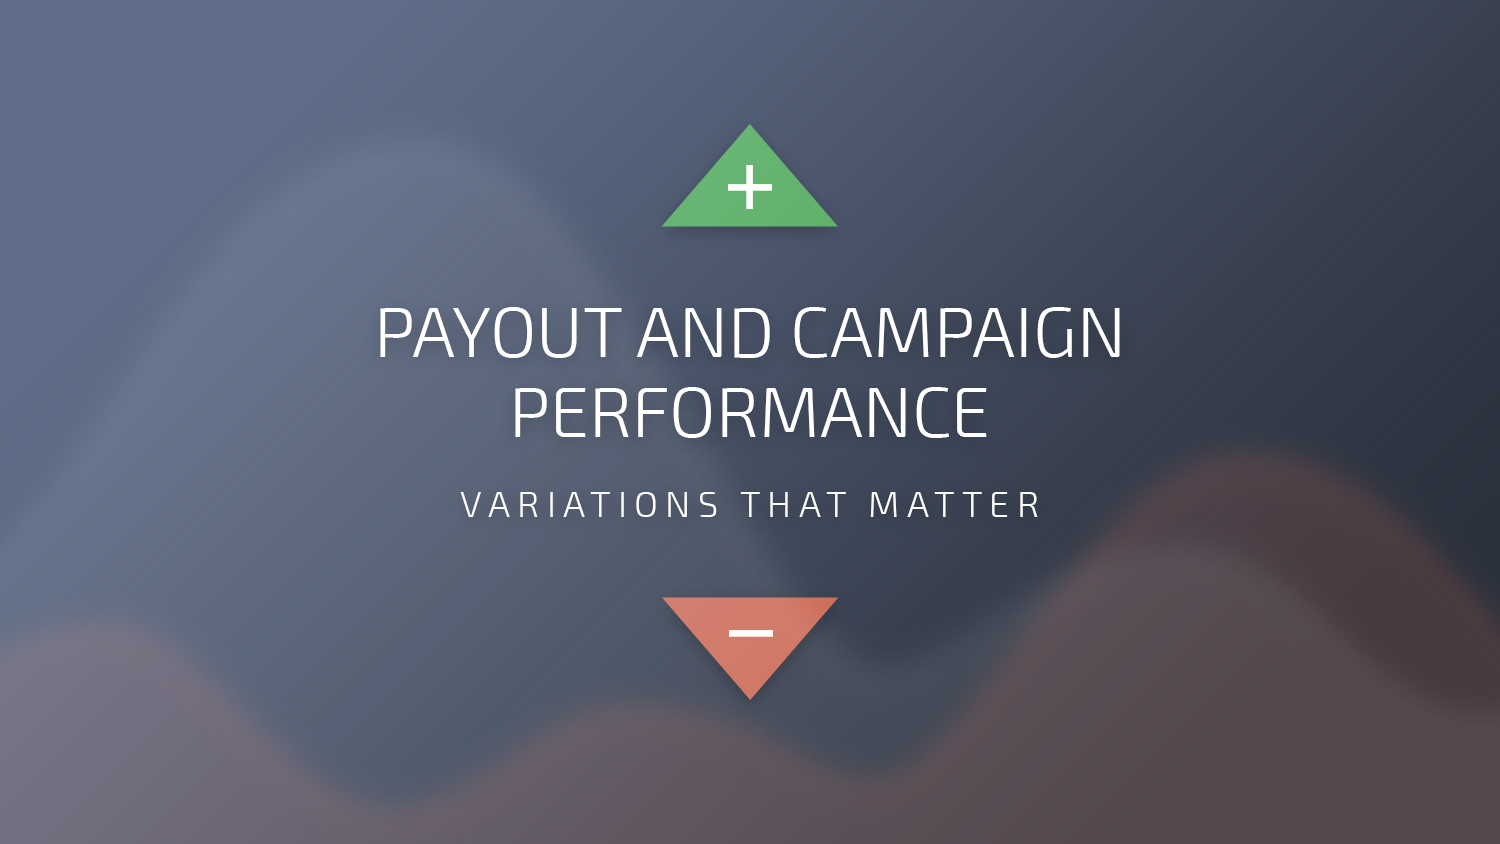 1500x844_Payout_Campaign_2